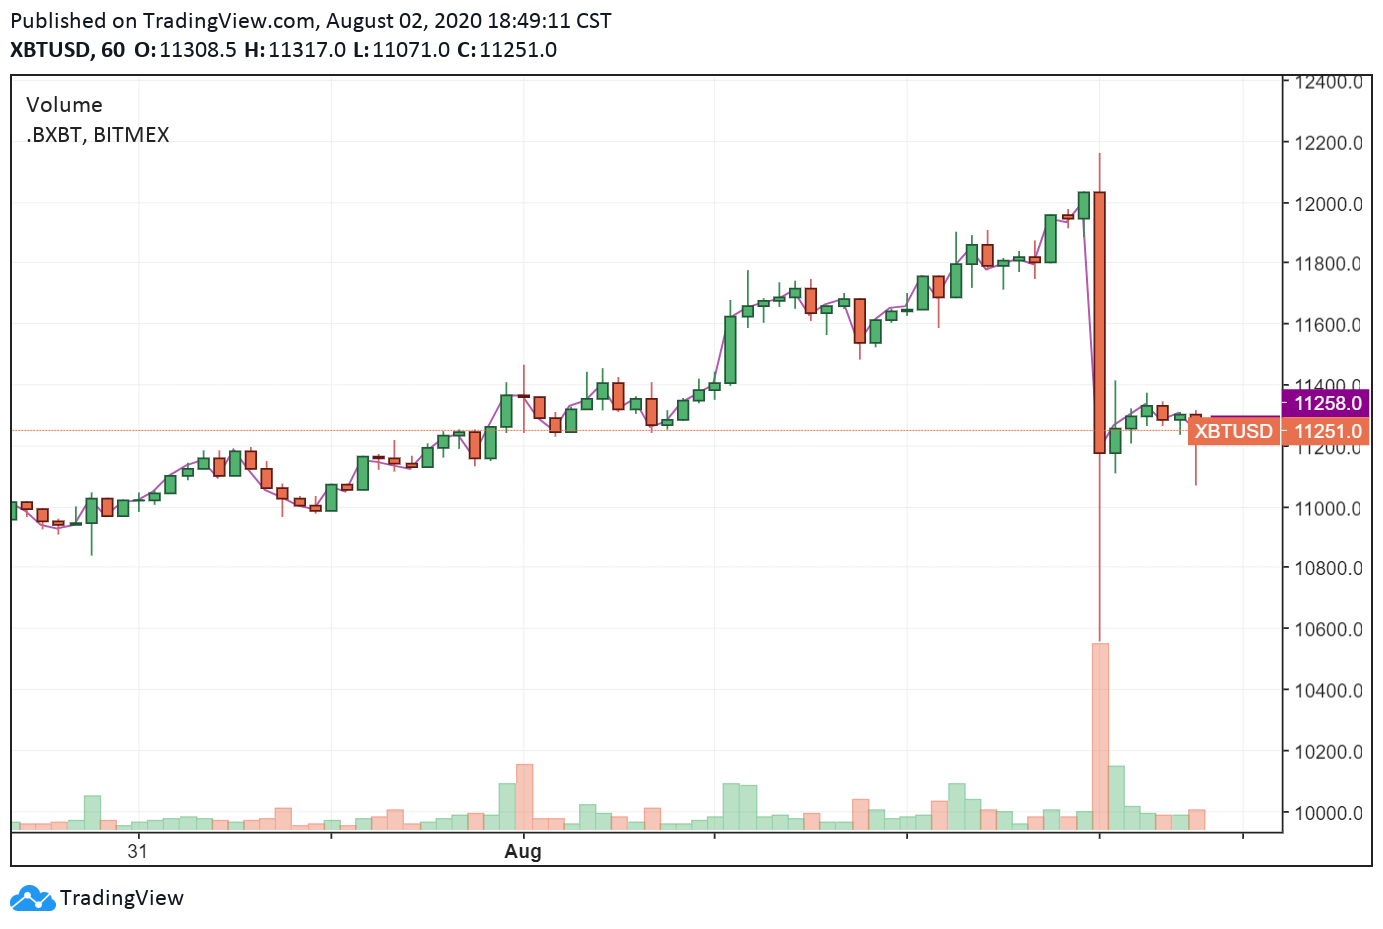 The price of Bitcoin falls sharply in a short time